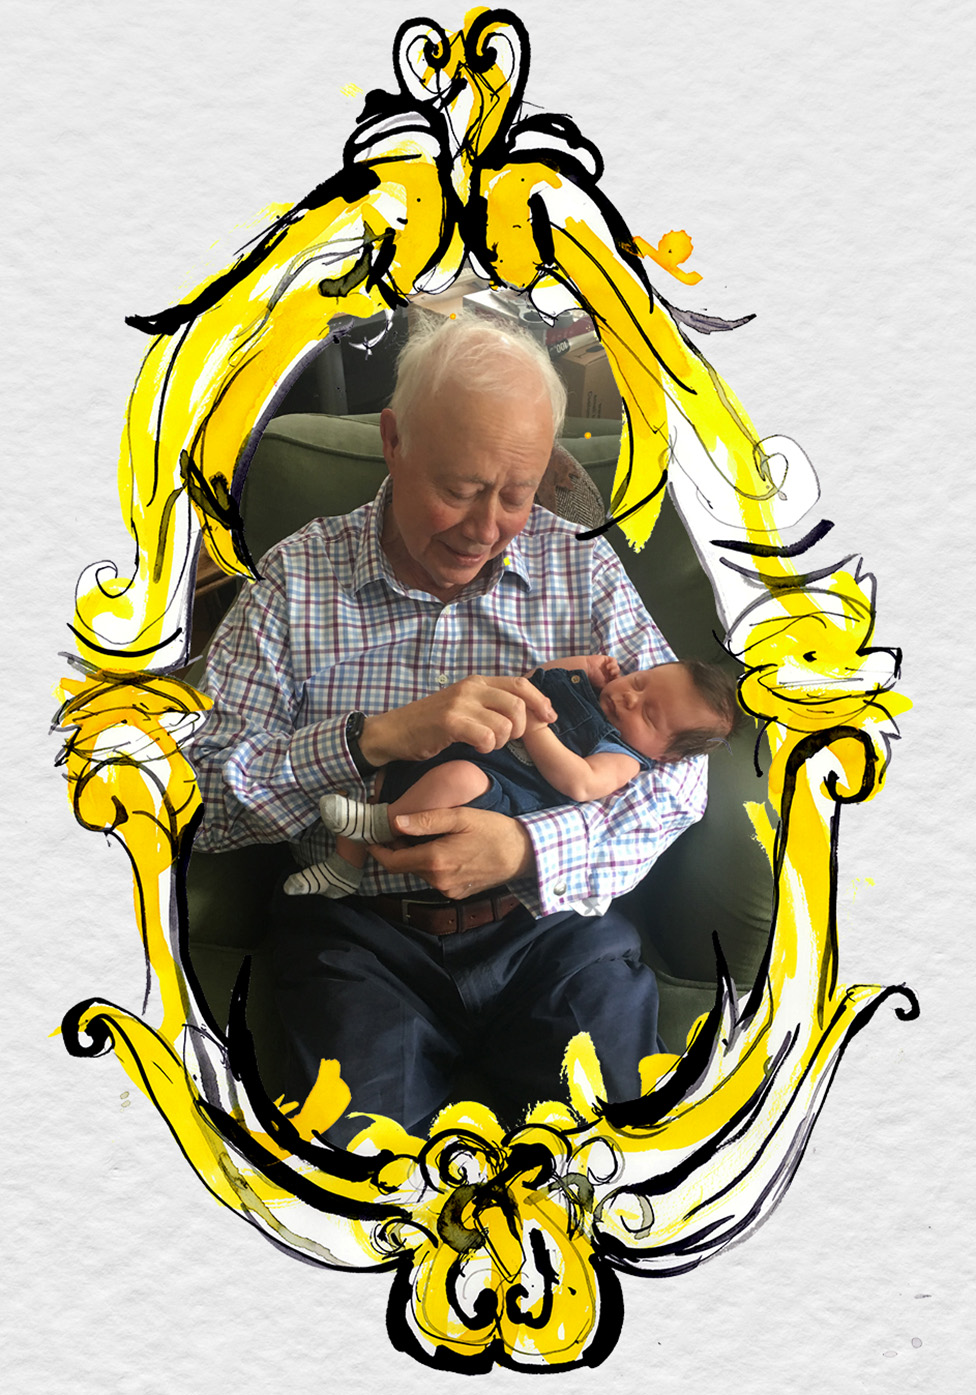 John Marriott cuddling his first grandson, Ollie